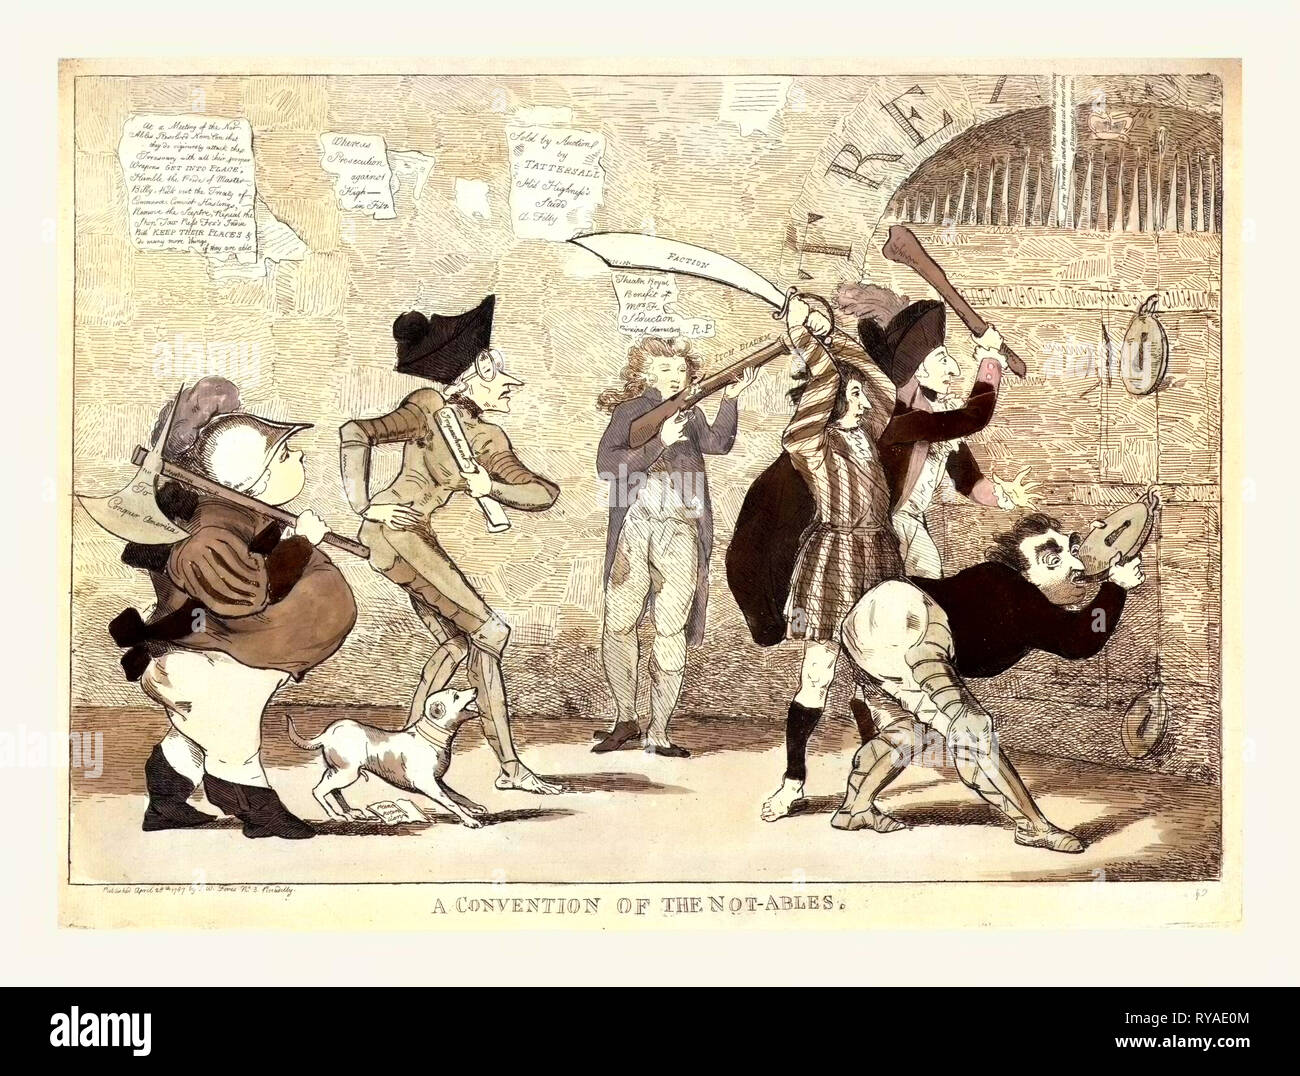 A Convention of the Not-Ables, Engraving 1787, Lord North, Edmund Burke, Charles Fox, the Prince of Wales, and Others Attempting to Break Into the Royal Treasury - Stock Image